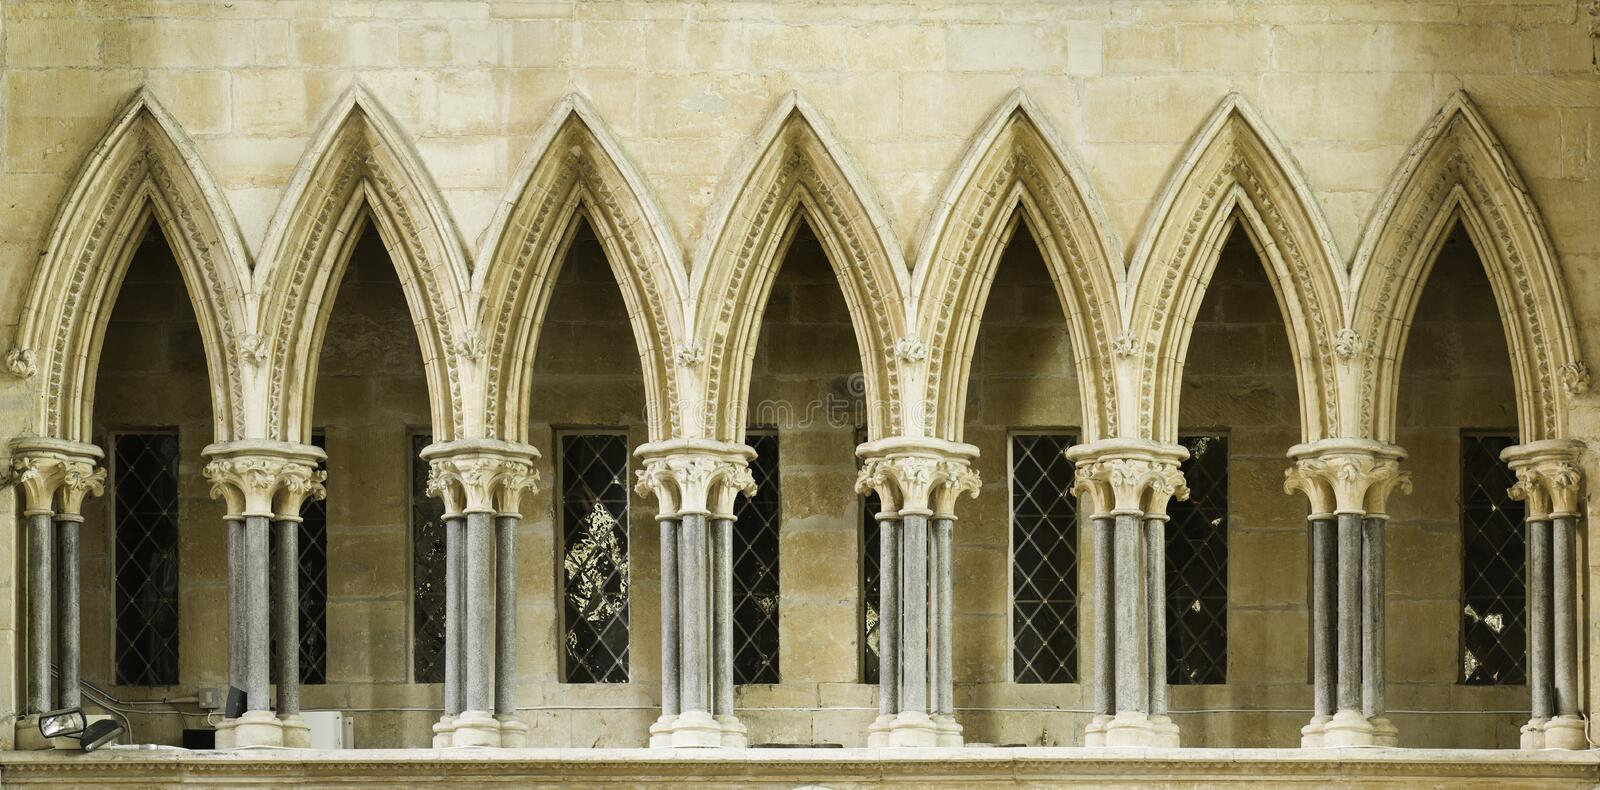 Download Gothic stock image. Image of chapter, pillar, arch, cathedral - 28057609